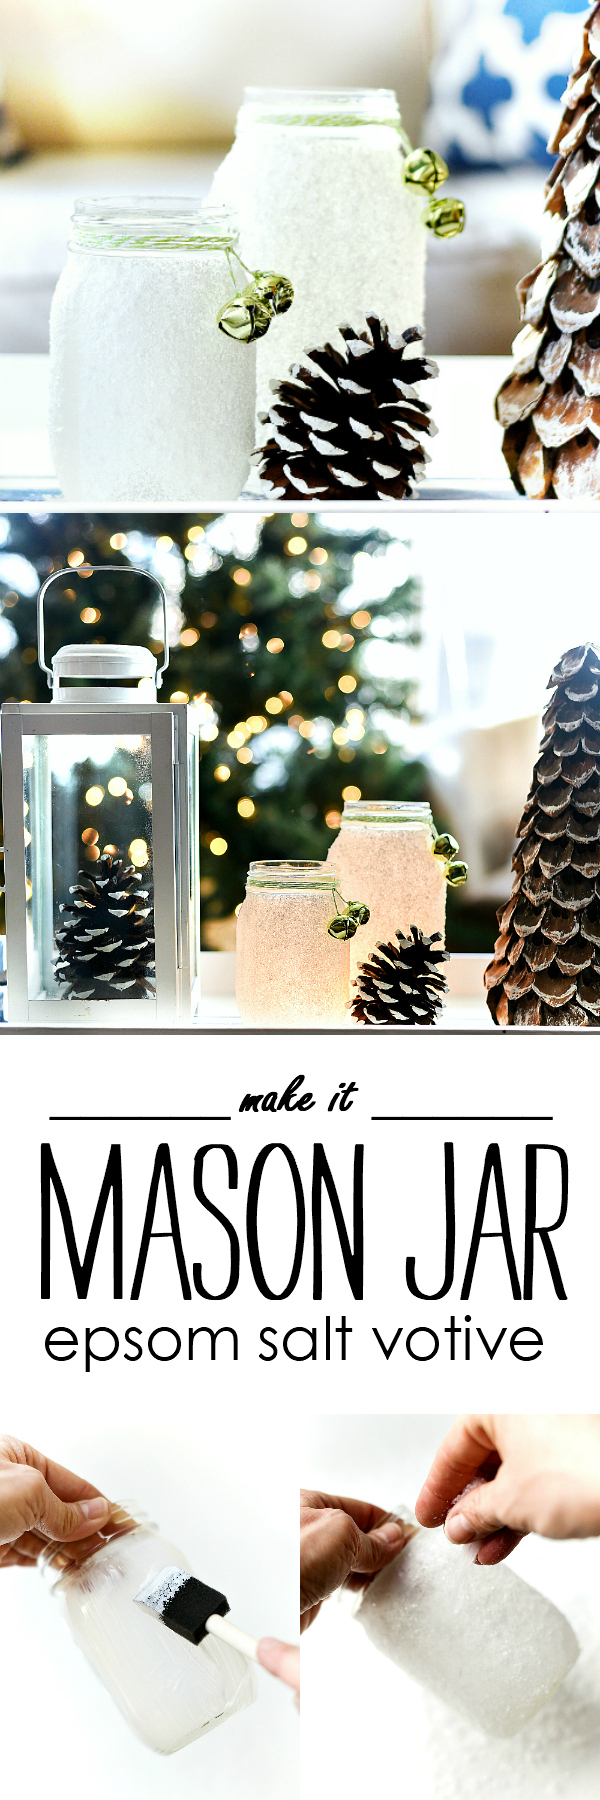 Epsom Salt Holiday Mason Jar - Mason Jar Holiday Crafts - Mason Jar Christmas Crafts